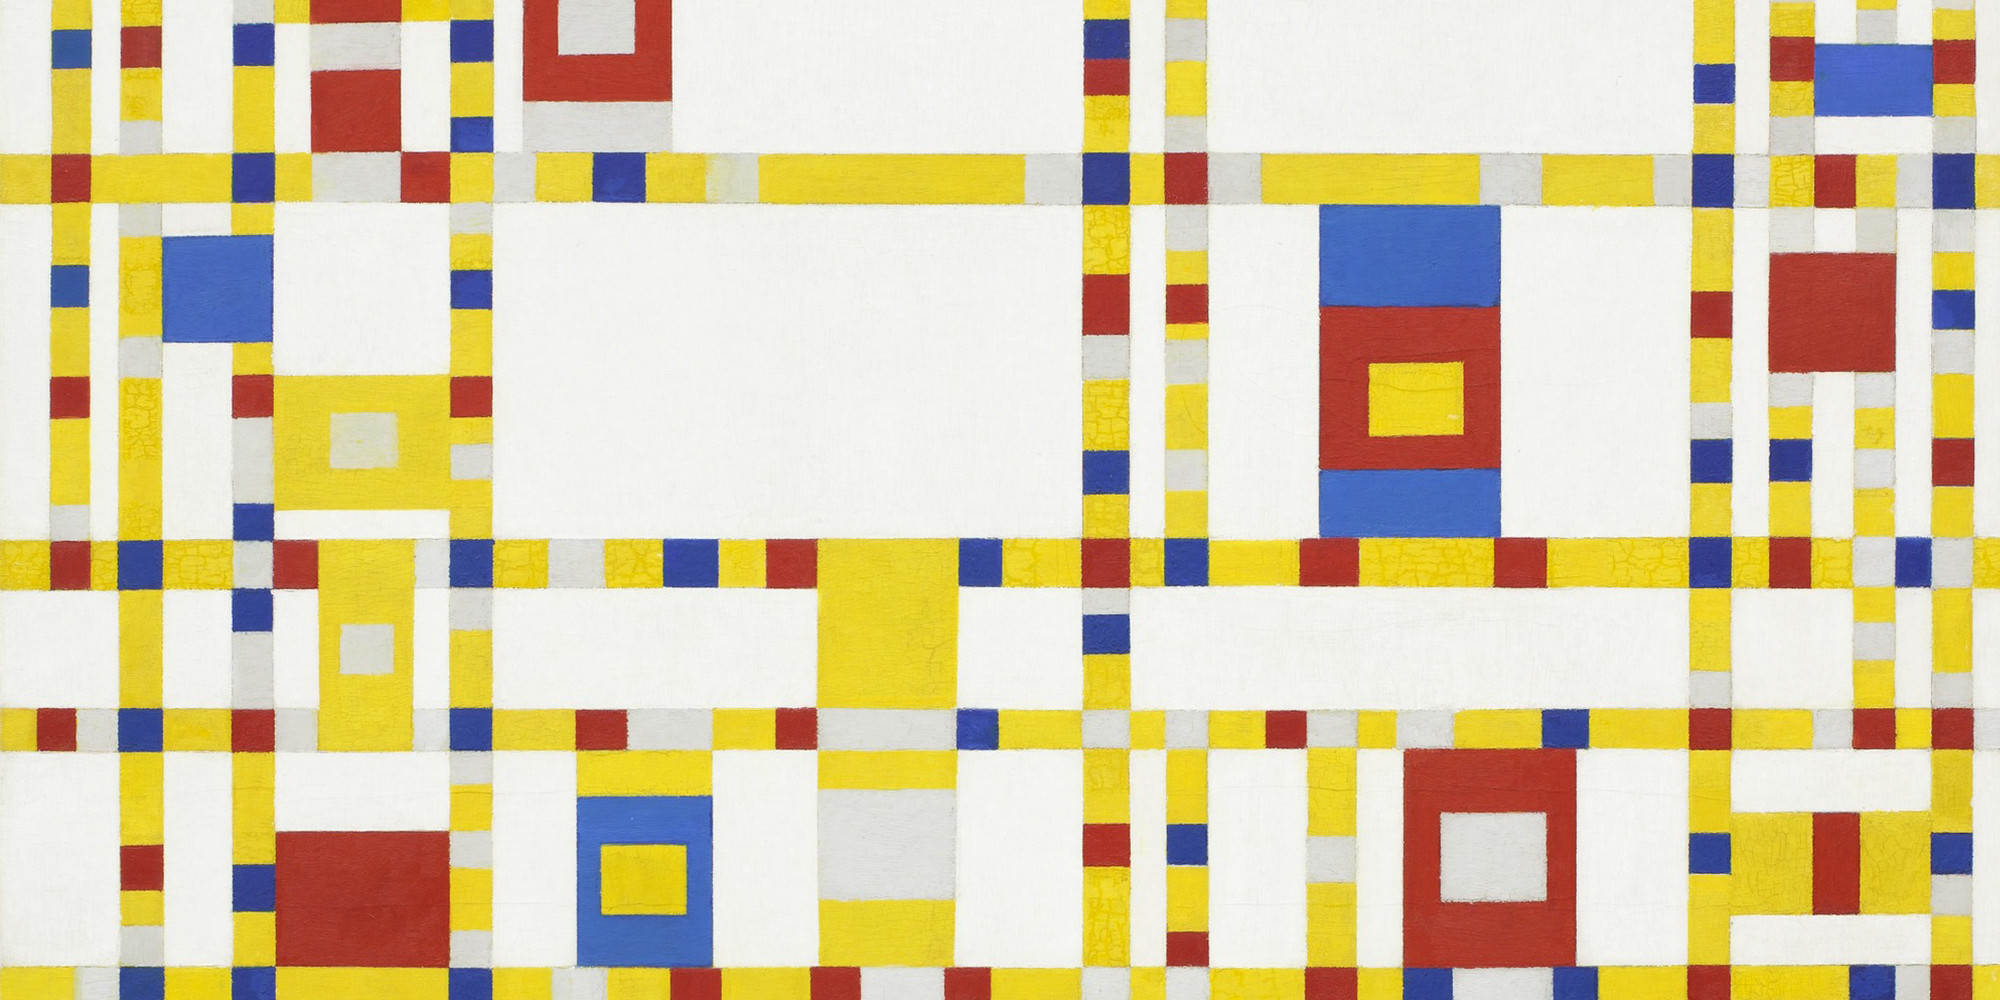 Piet Mondrian. <em>Broadway Boogie Woogie</em> 1942–43. Oil on canvas, 50 x 50&quot; (127 x 127 cm). The Museum of Modern Art, New York. Given anonymously